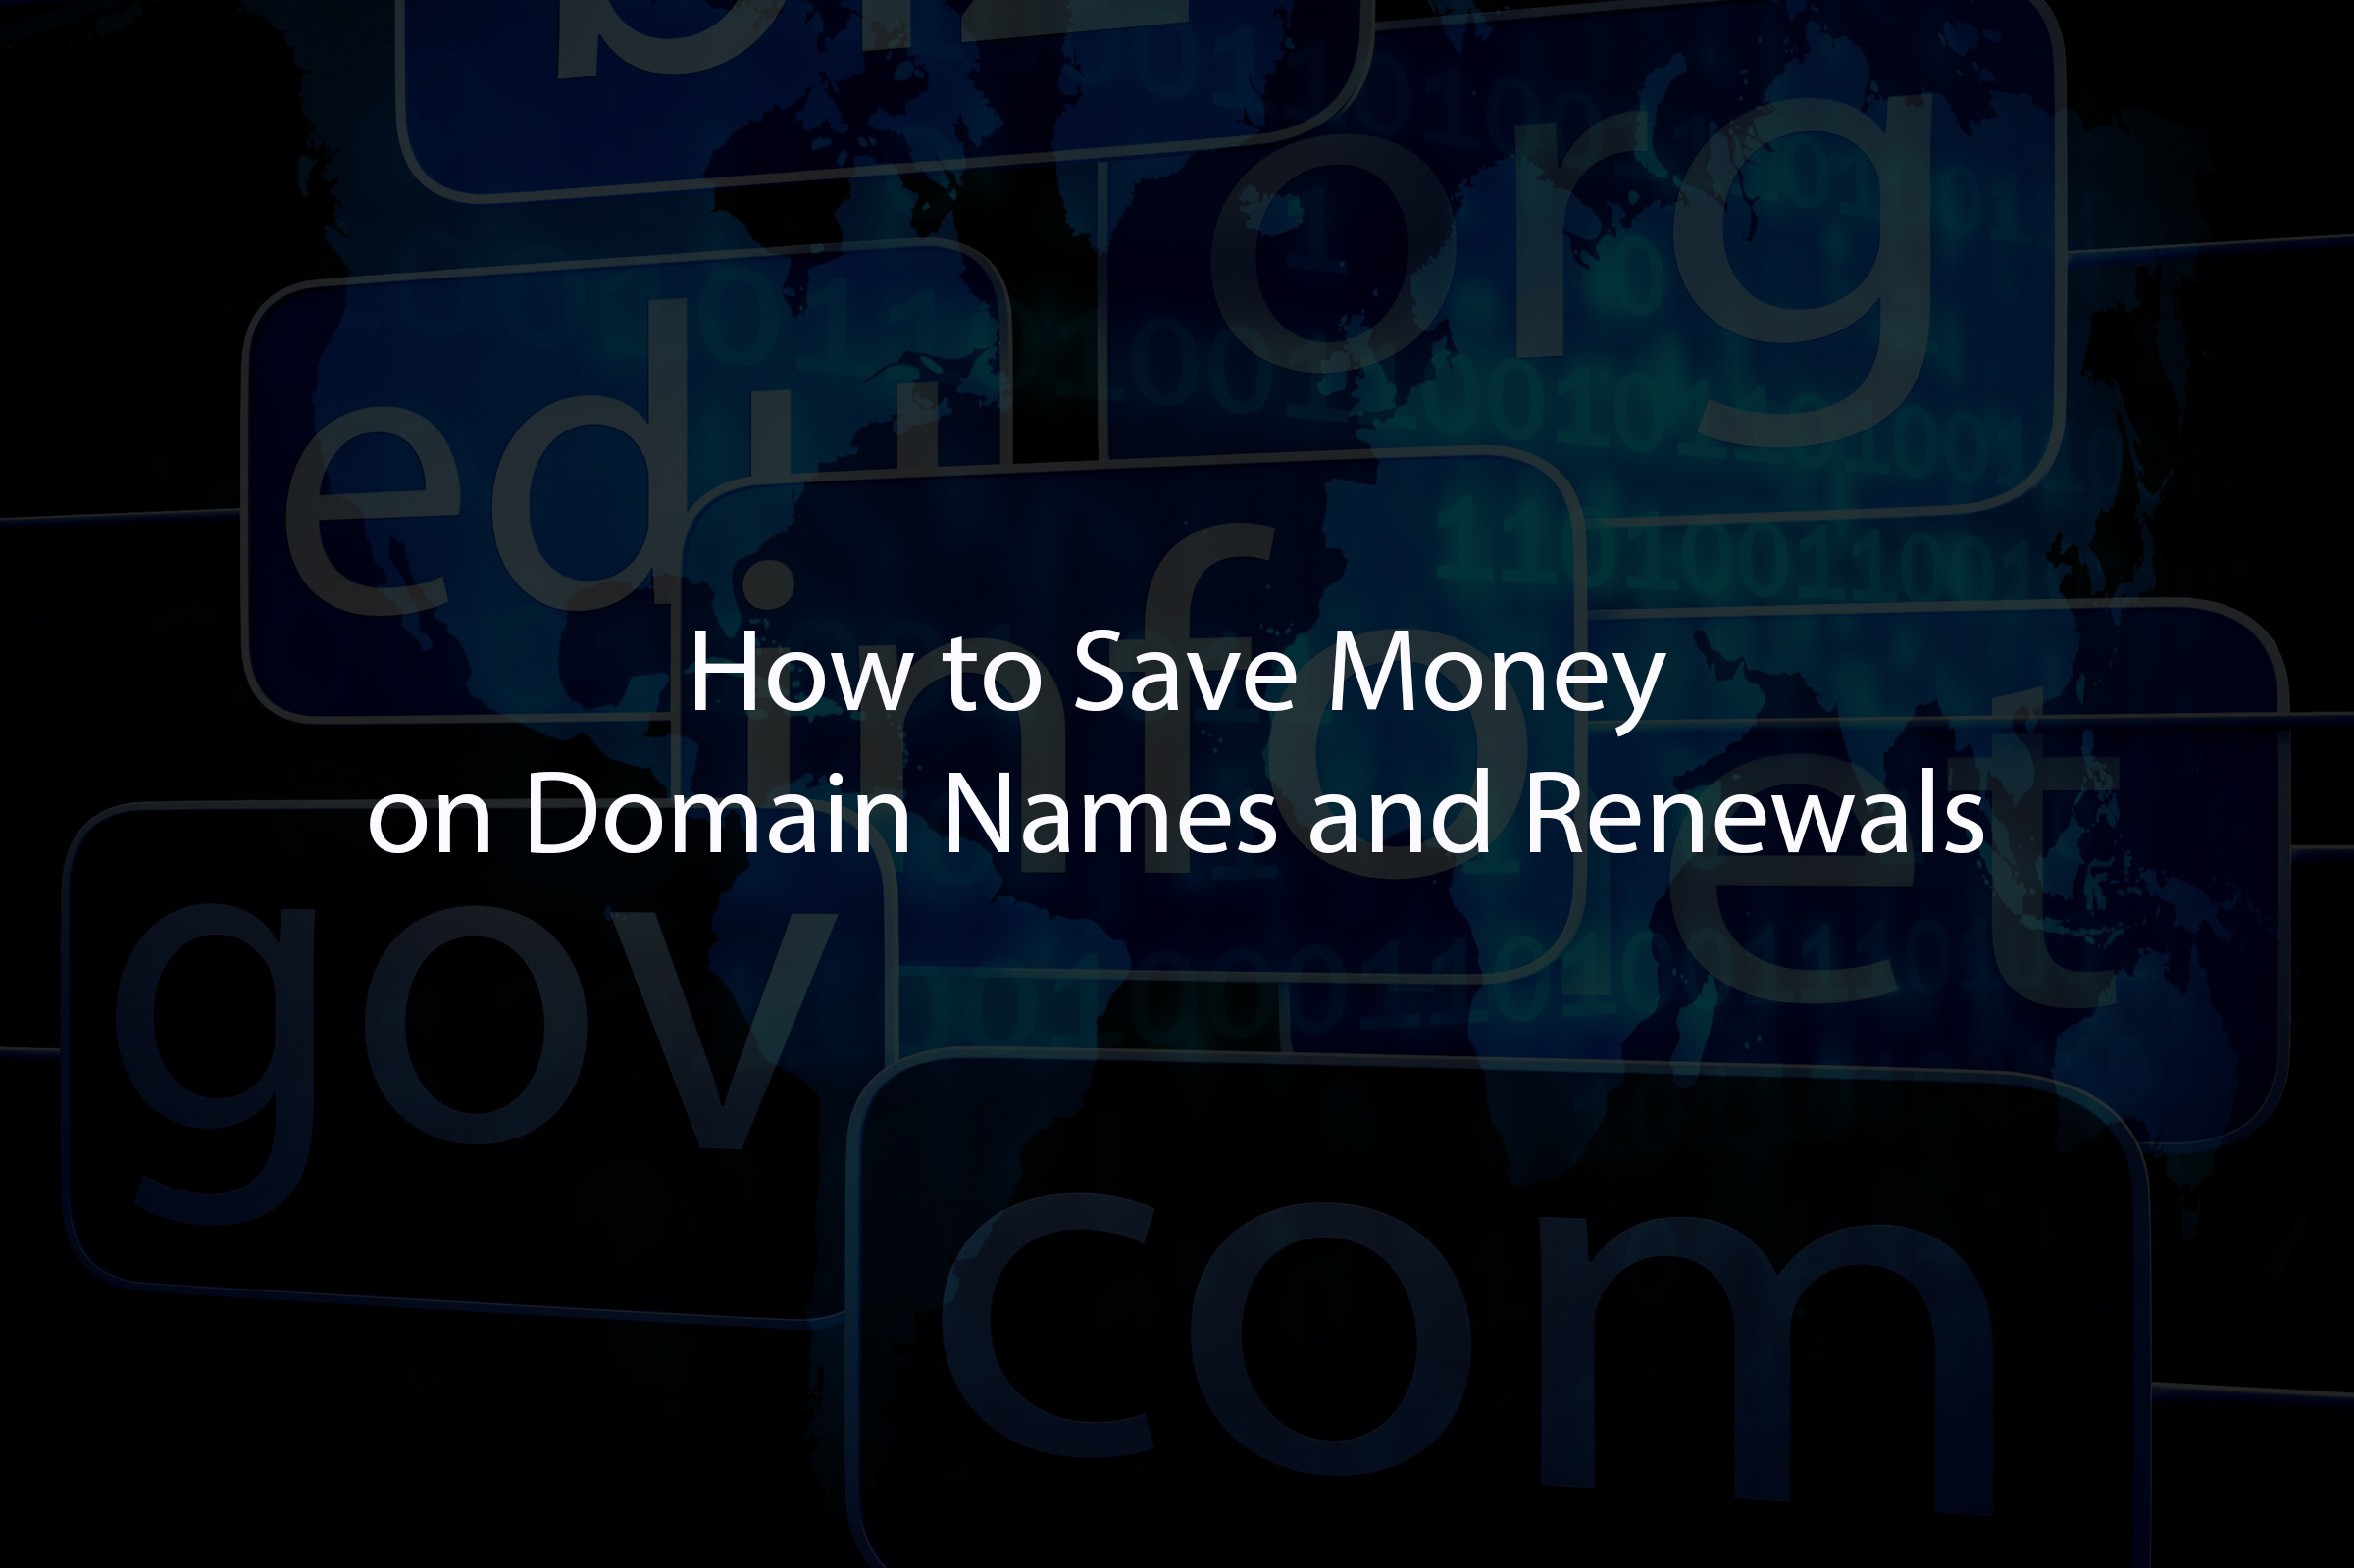 How to Save Money on Domain Names and Renewals